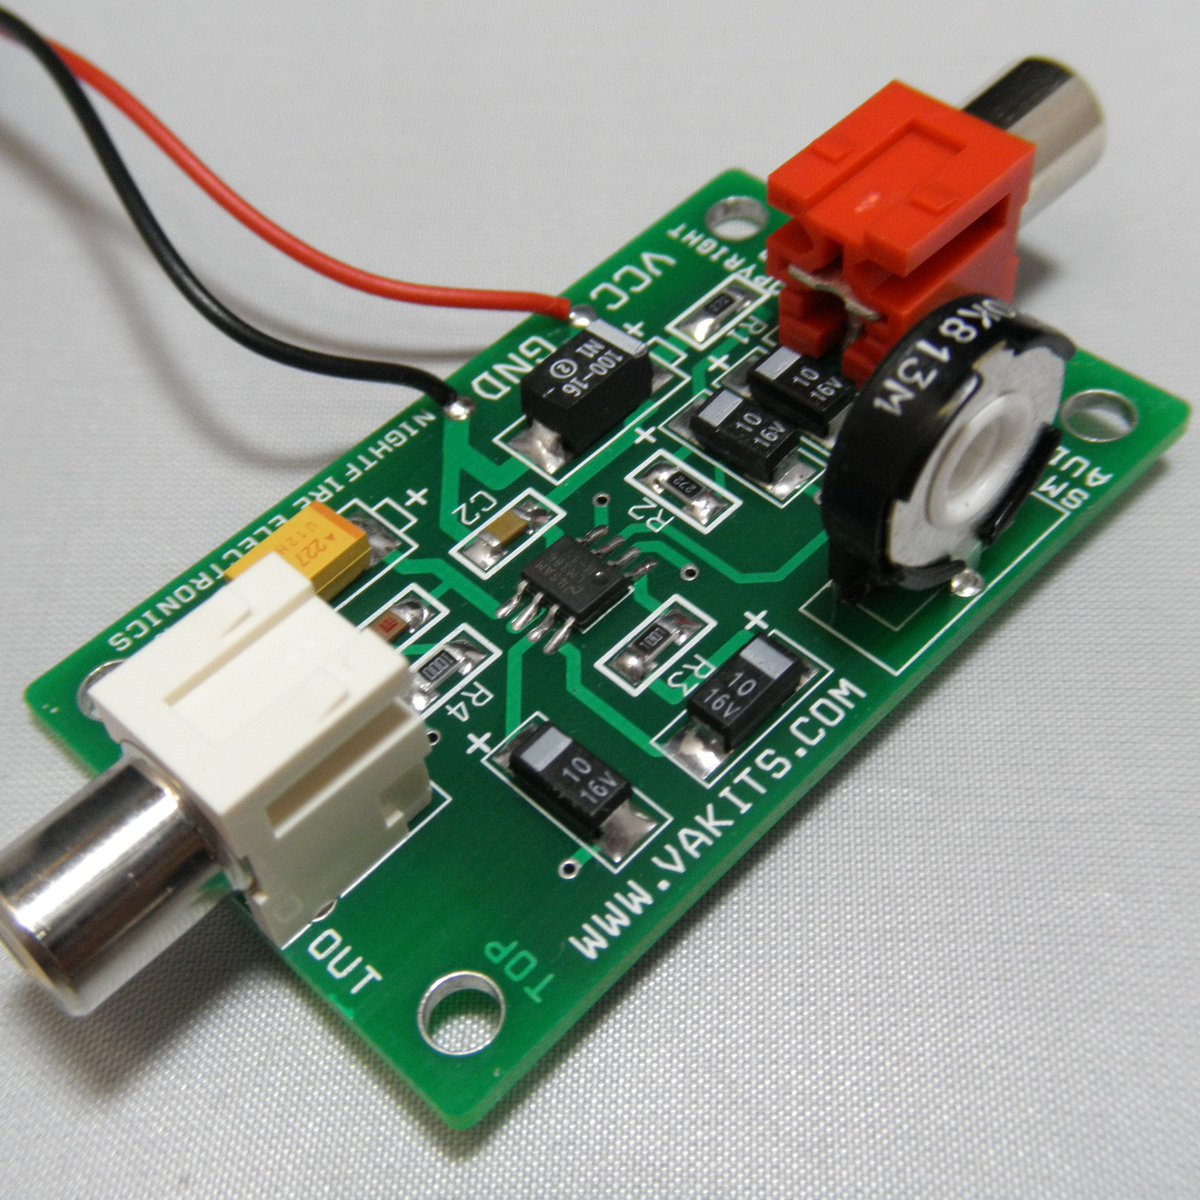 Lm386 Smt Audio Amp Kit 1700 From Nightfire Electronics Llc On Tindie Stereo Amplifier Circuit